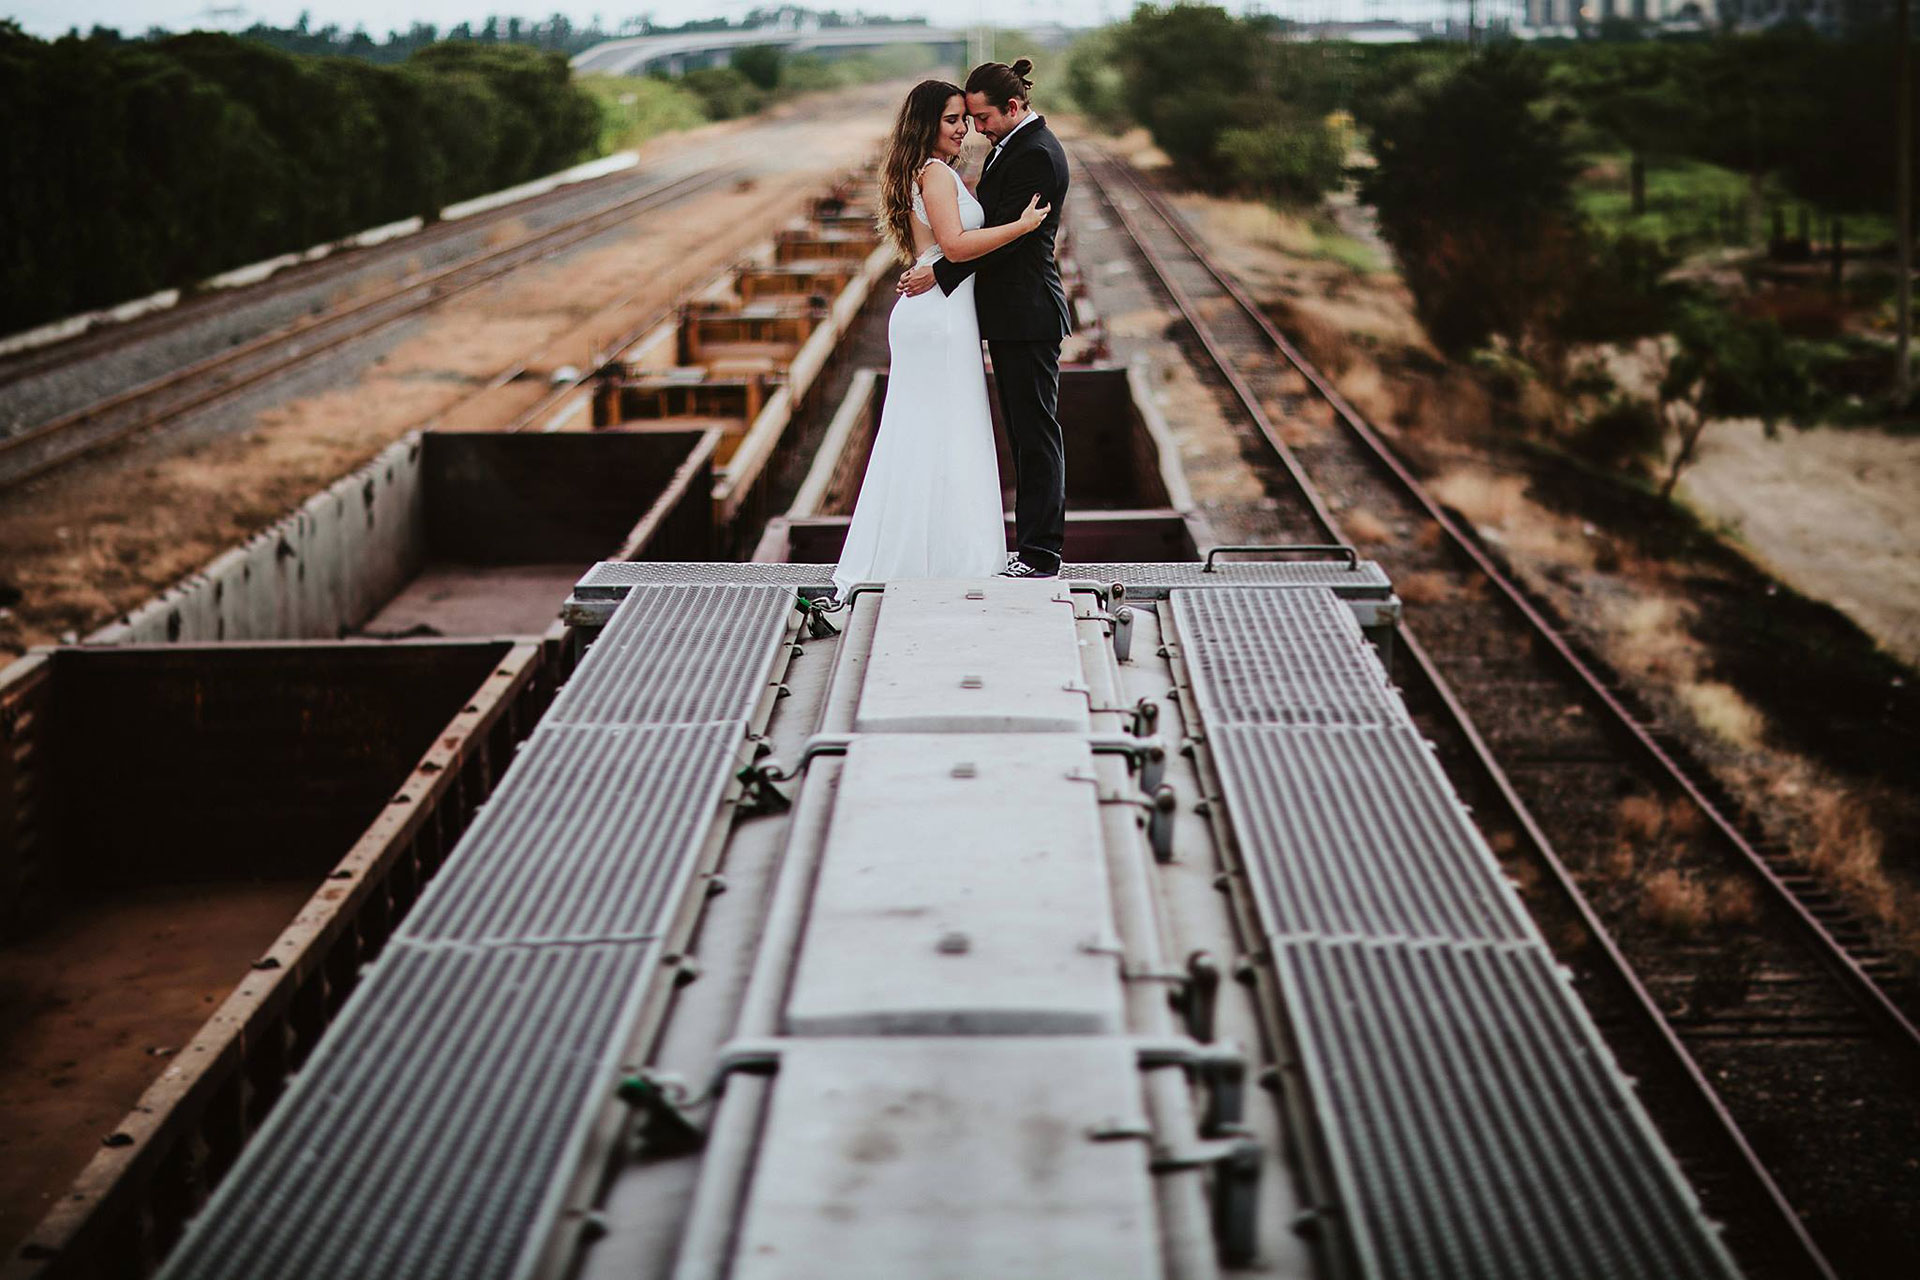 An artistic approach for your wedding day photography